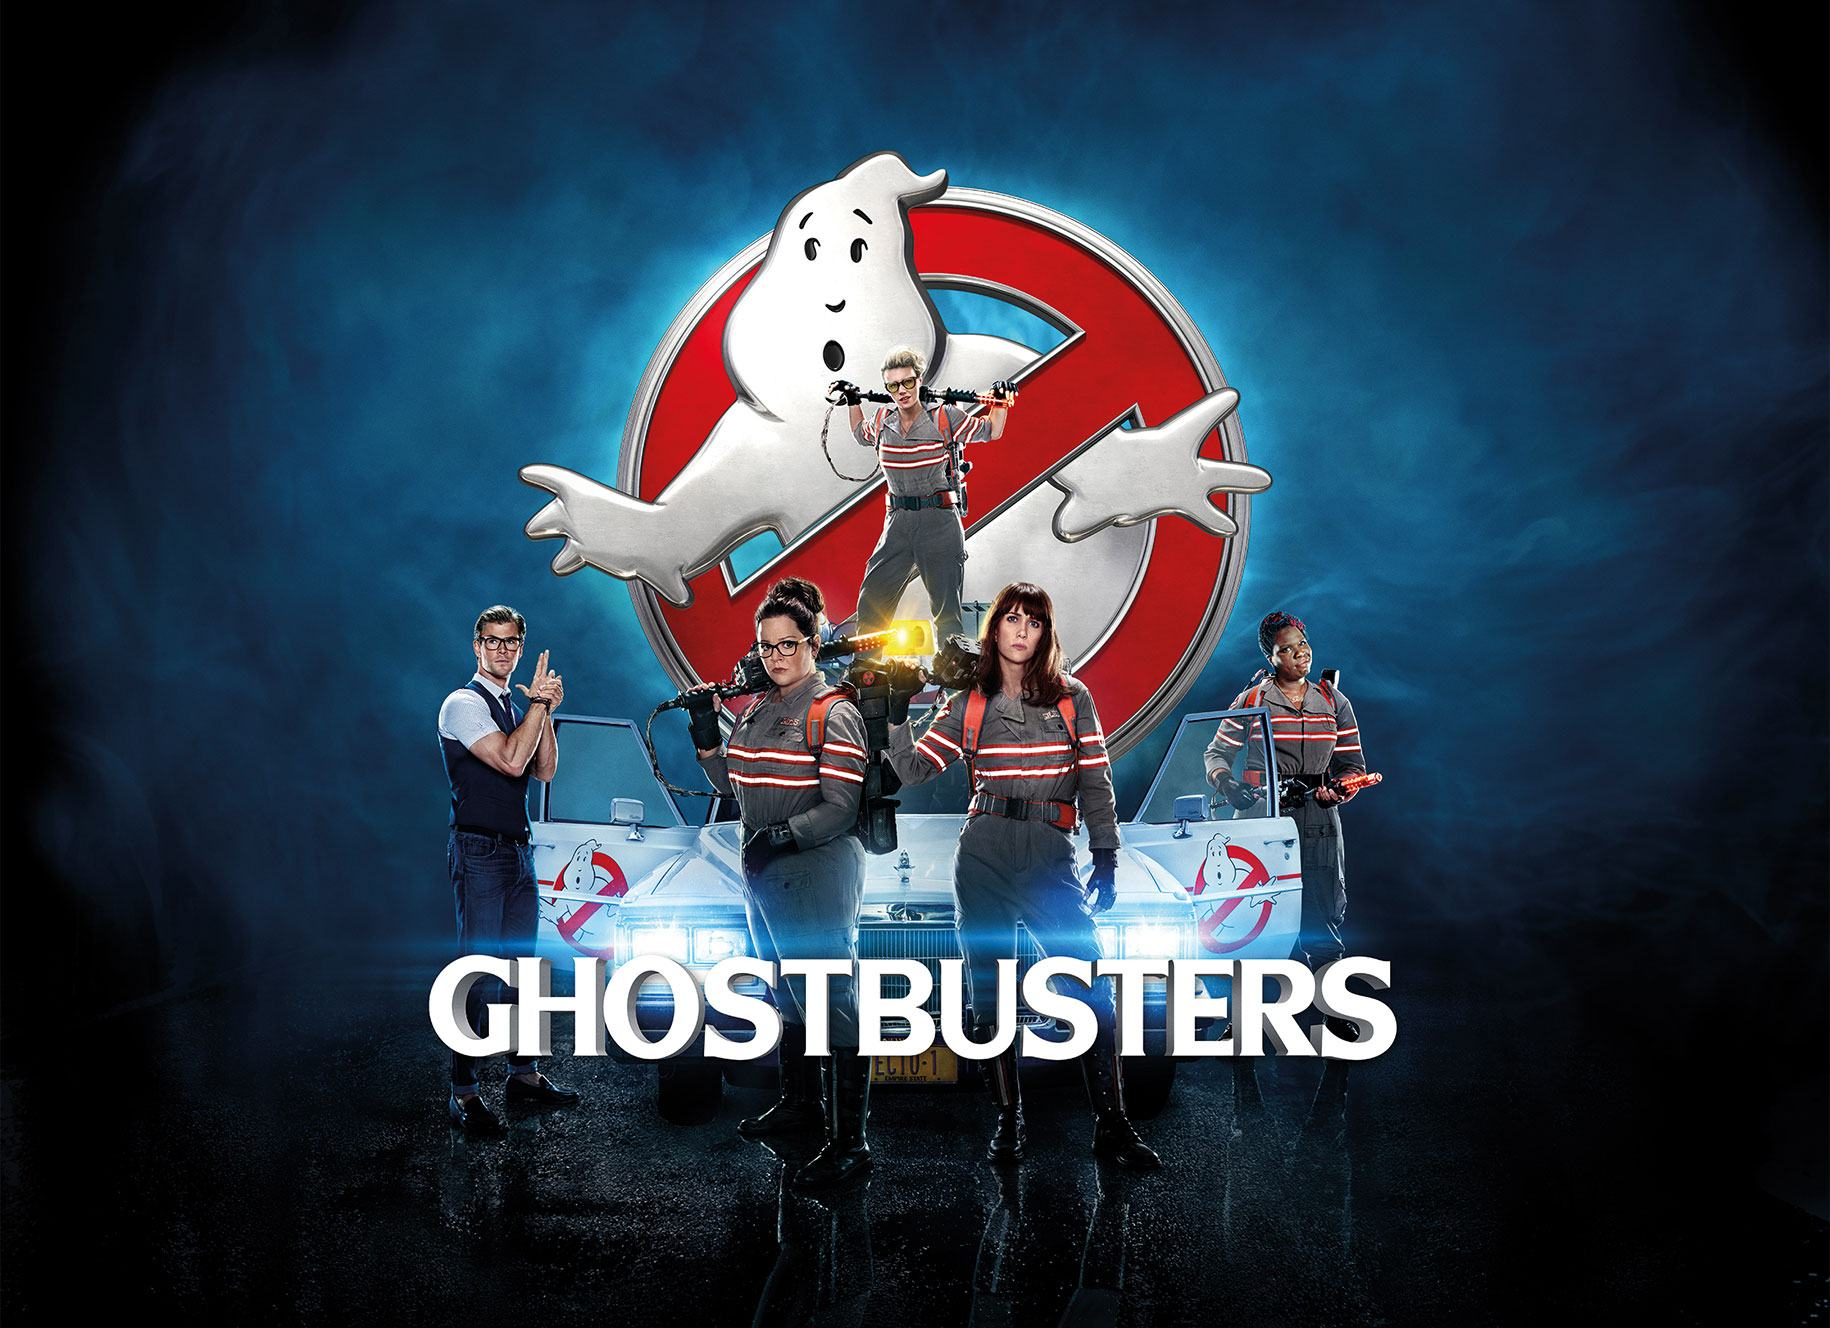 Ghostbusters Promo